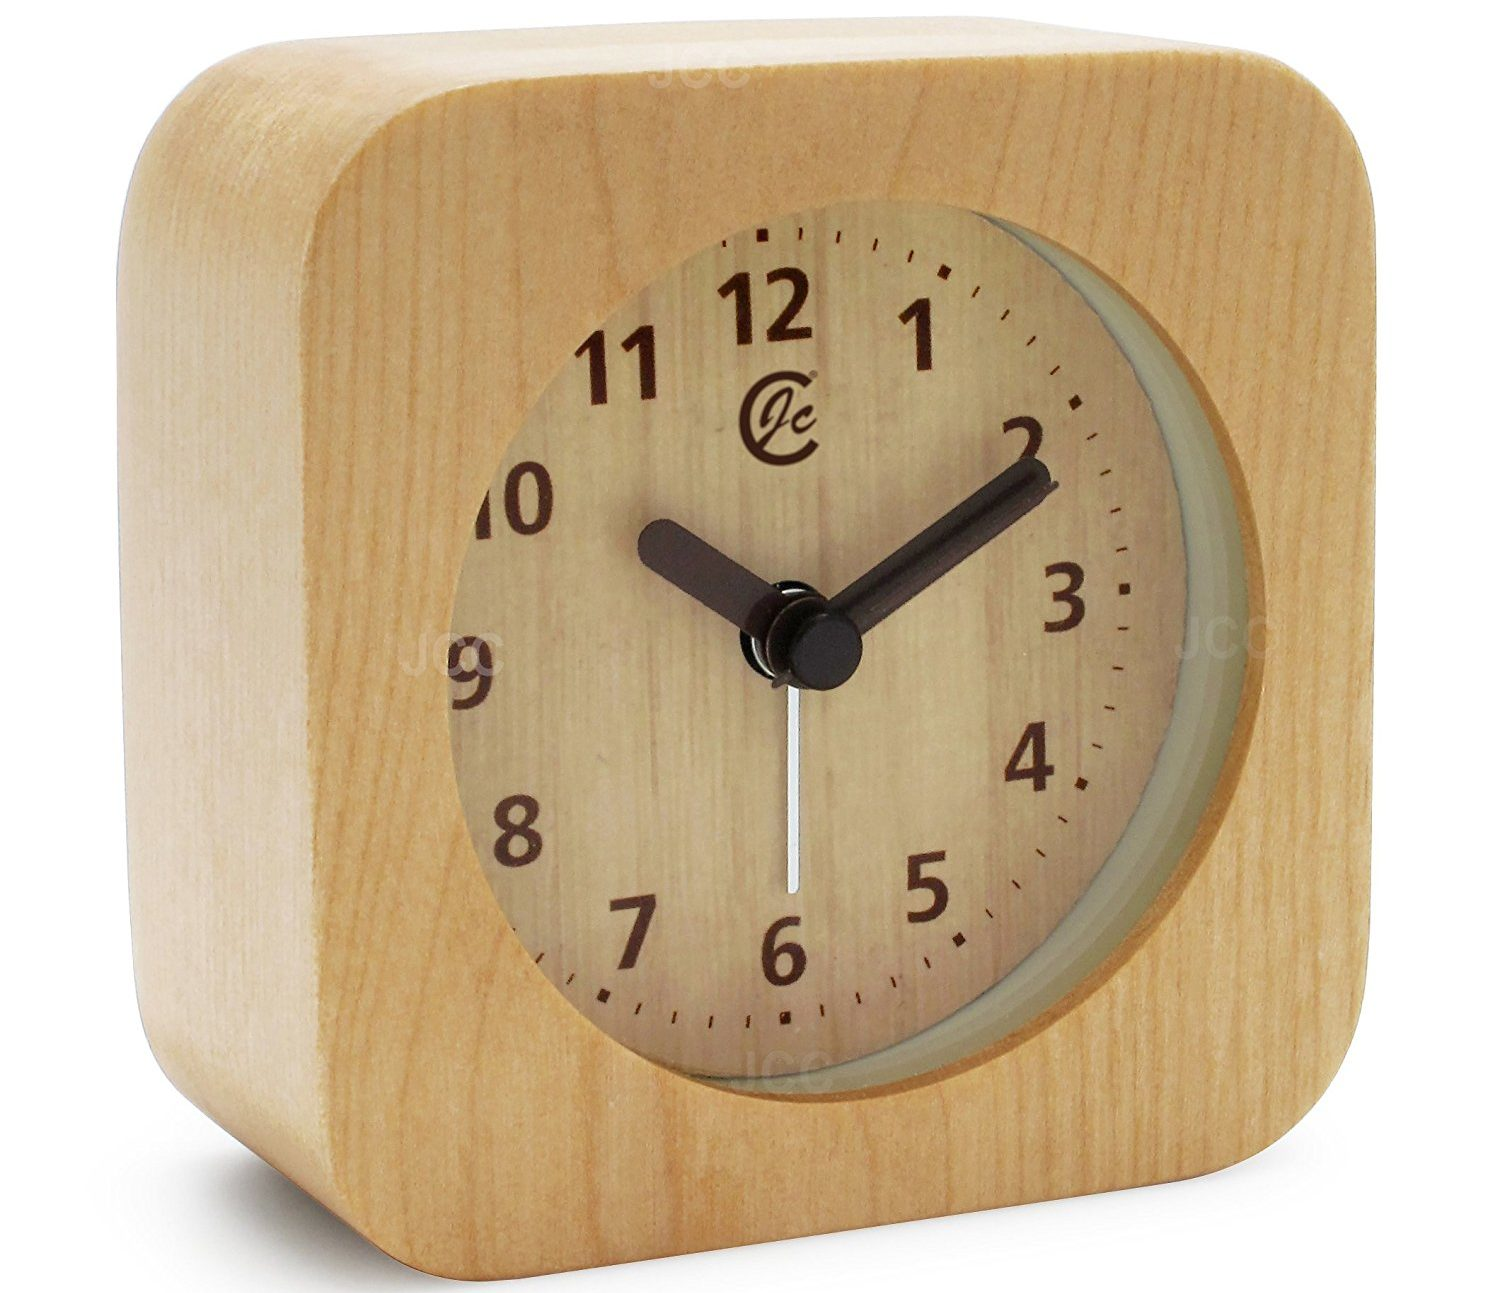 JCC Arabic Numerals Square Nature Wood Non Ticking Sweep Analog Quartz Bedside Desk Alarm Clock with Ascending Louder Alarm, Snooze and Night Light Feature, Battery Operated (Light Wood)